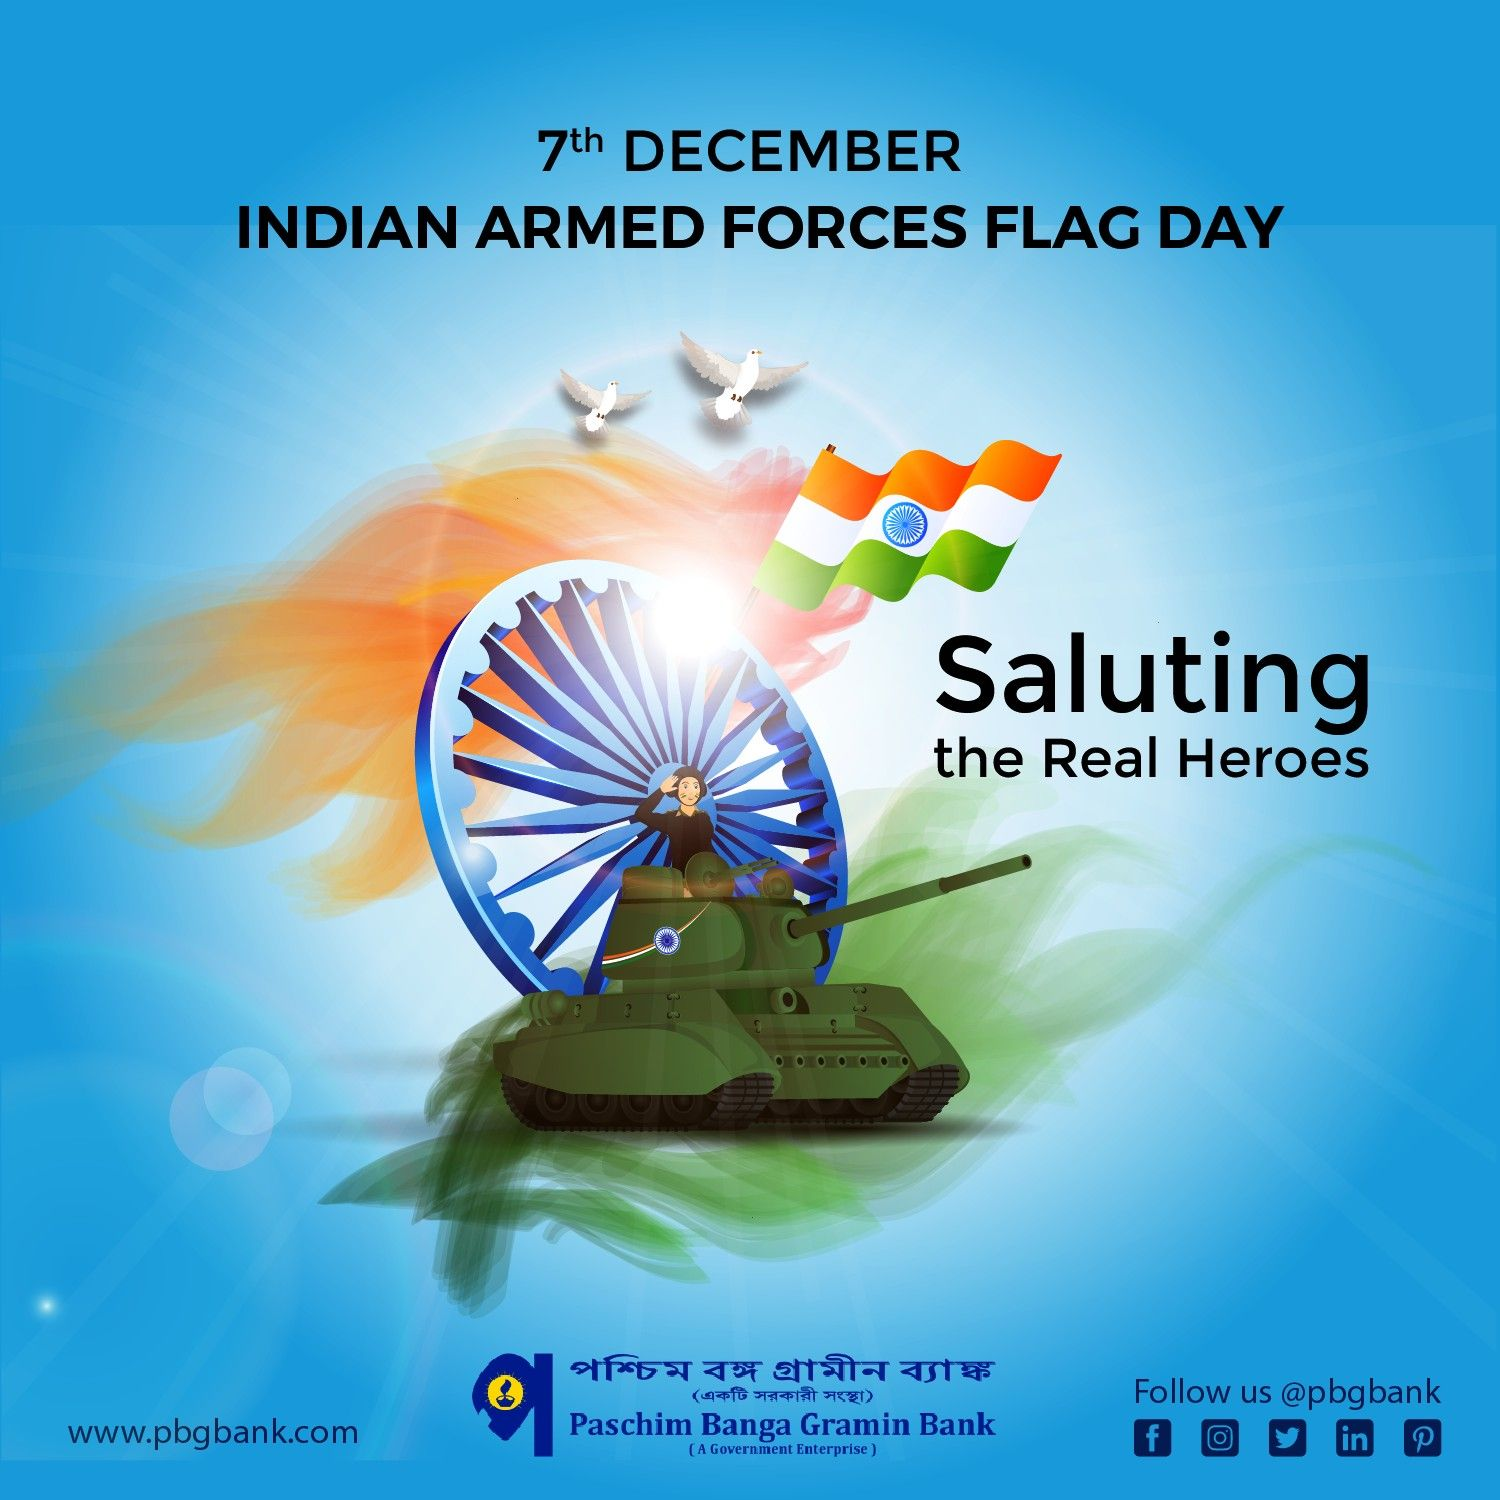 Indianarmedforcesflagday Paschimbangagraminbank Armedforcesflagday Armedforces Indianarmy Saluting Flagday Armed Forces Flag Day Real Hero Armed Forces